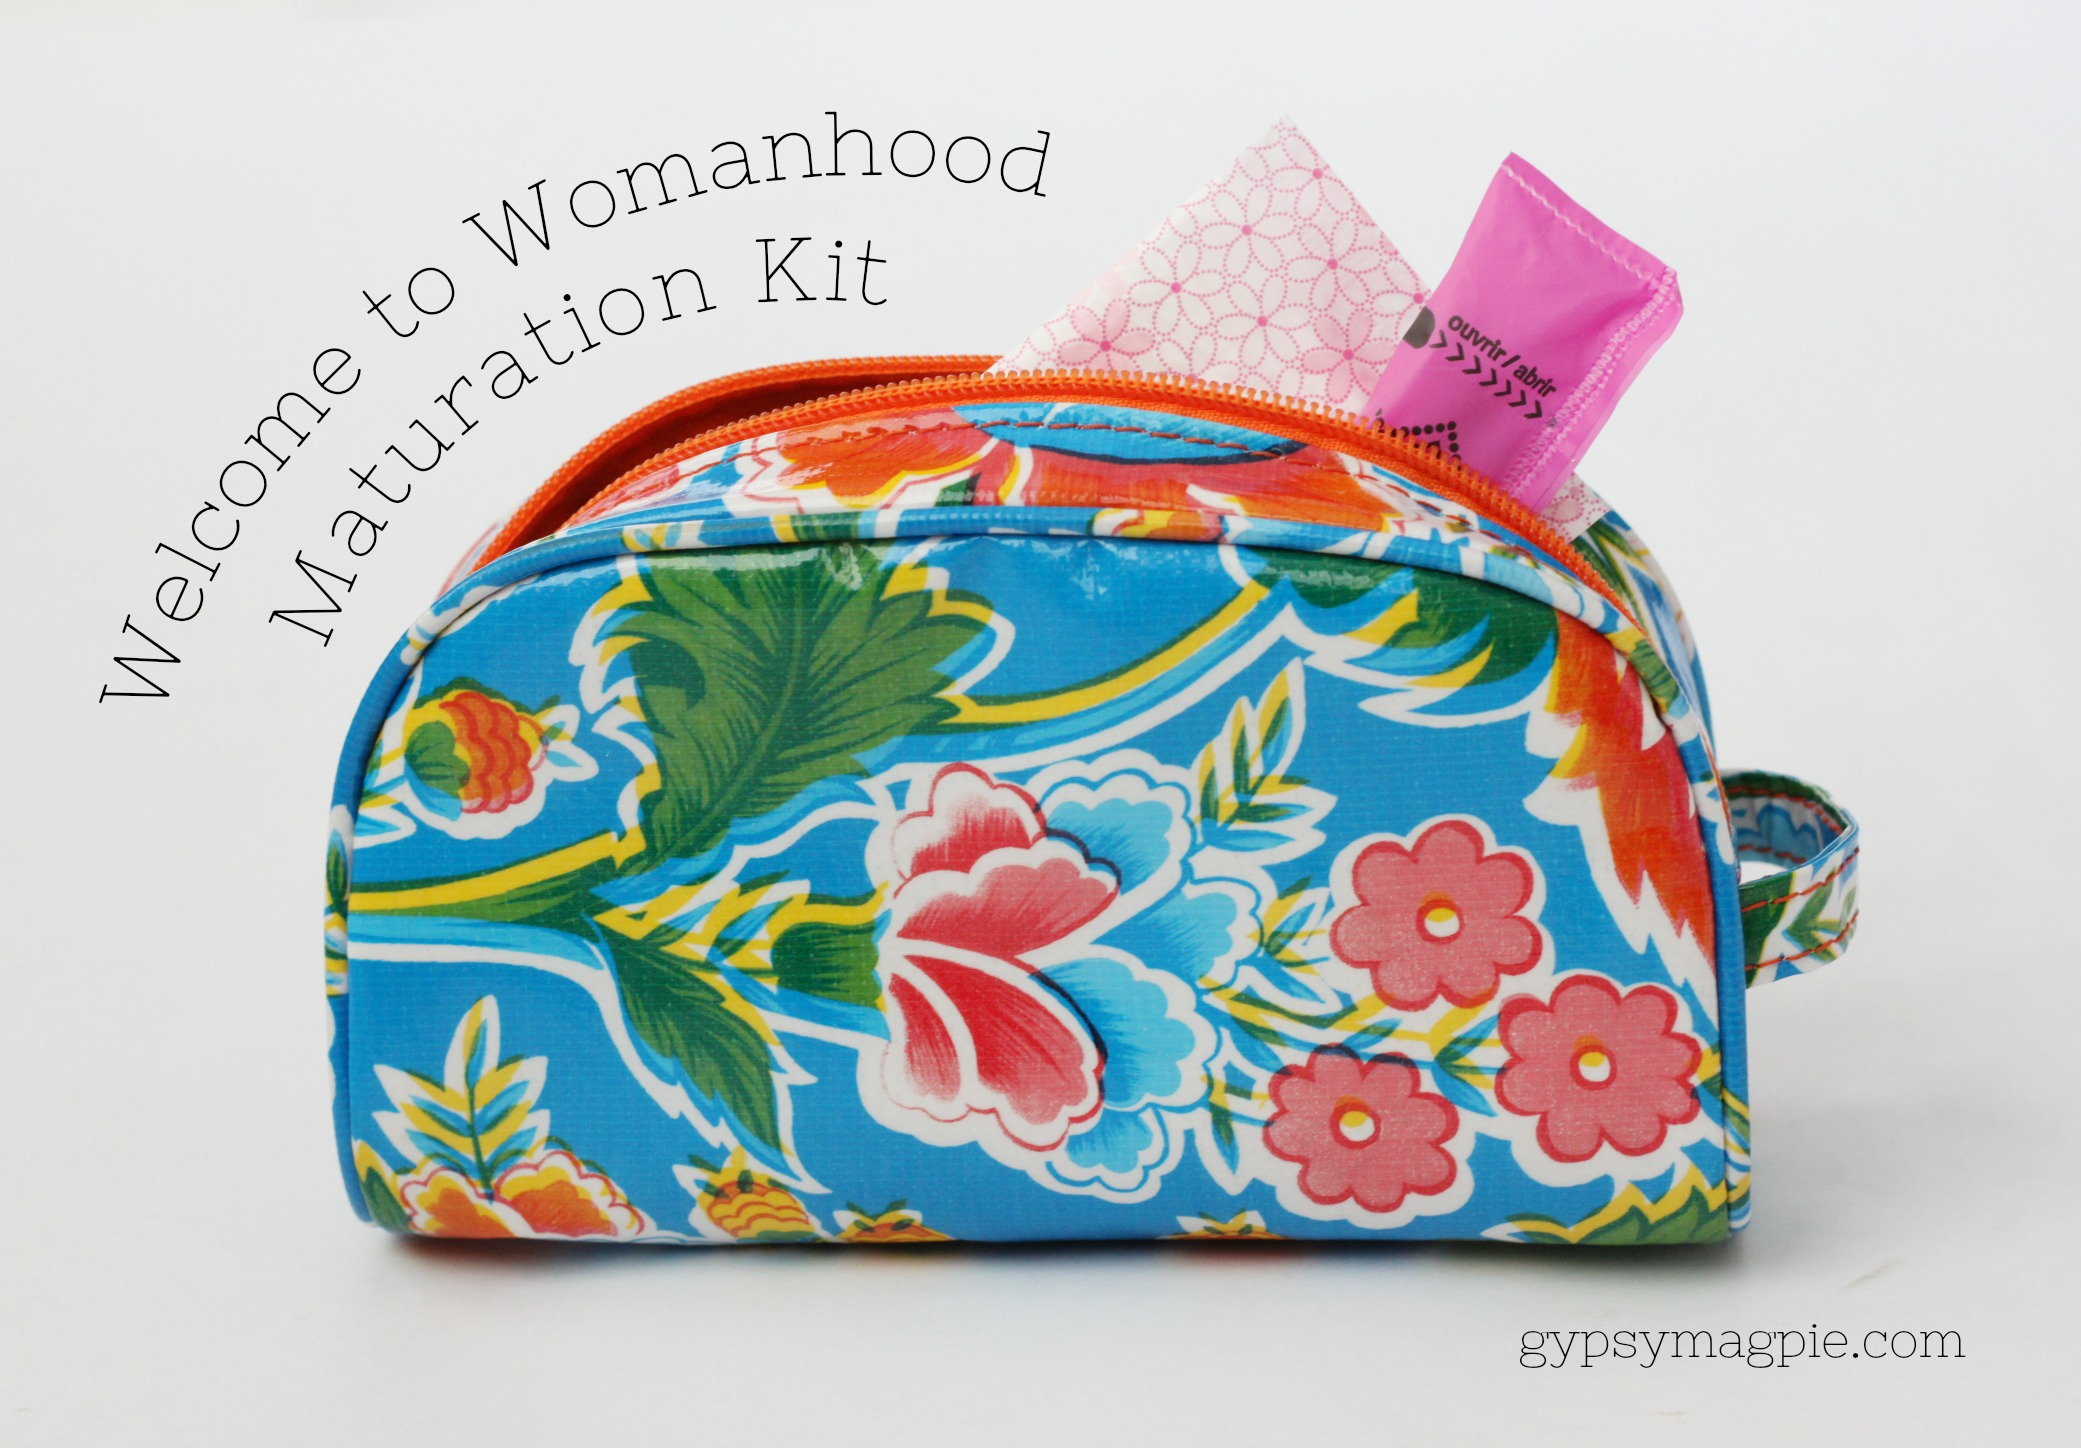 Welcome your daughter to womanhood with this simple kit and a long talk. It doesn't have to be scary or awkward, I promise! | Gypsy Magpie